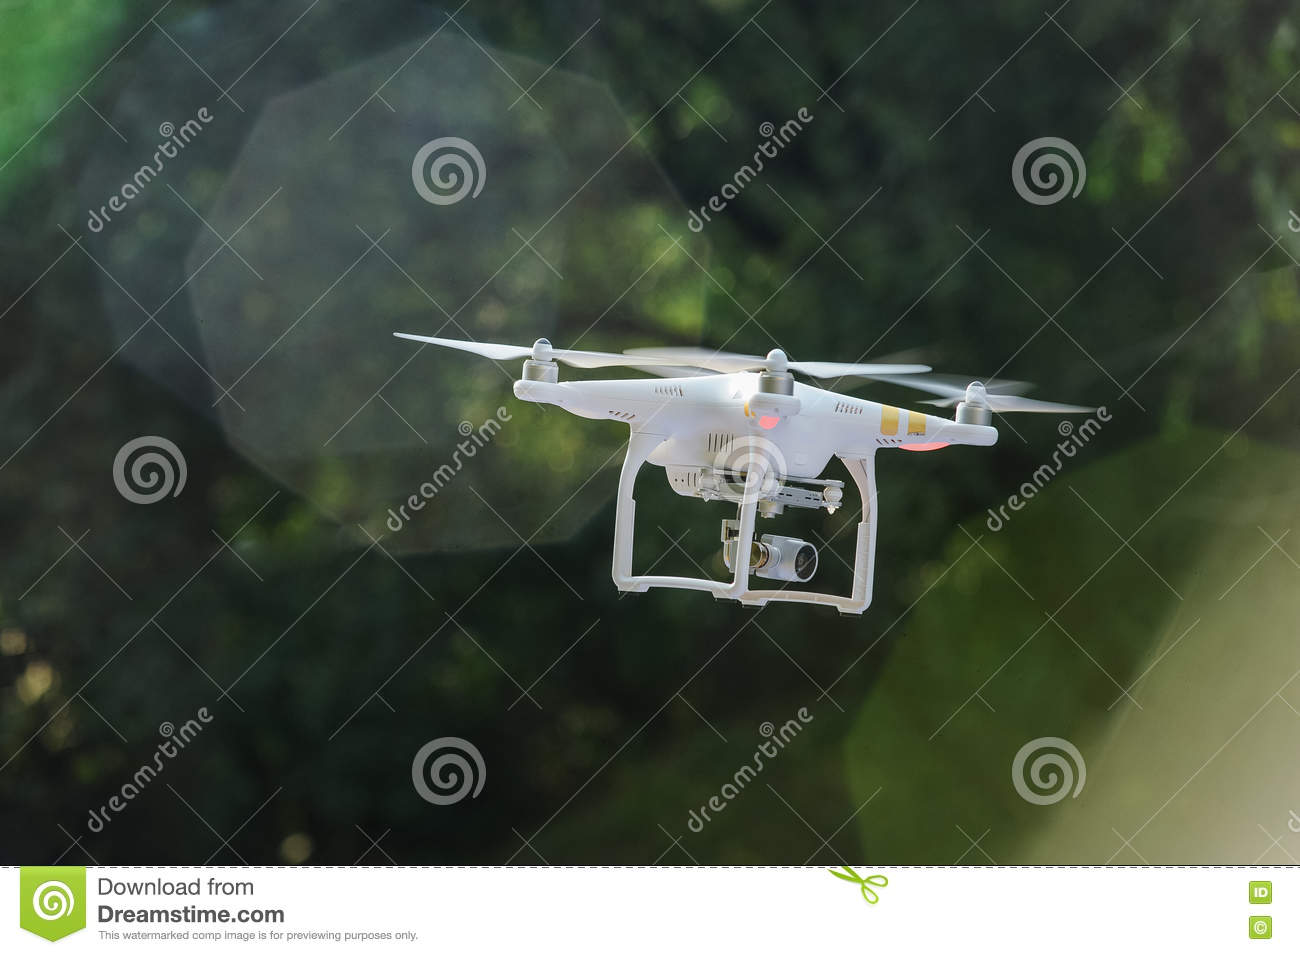 Flying drone with camera